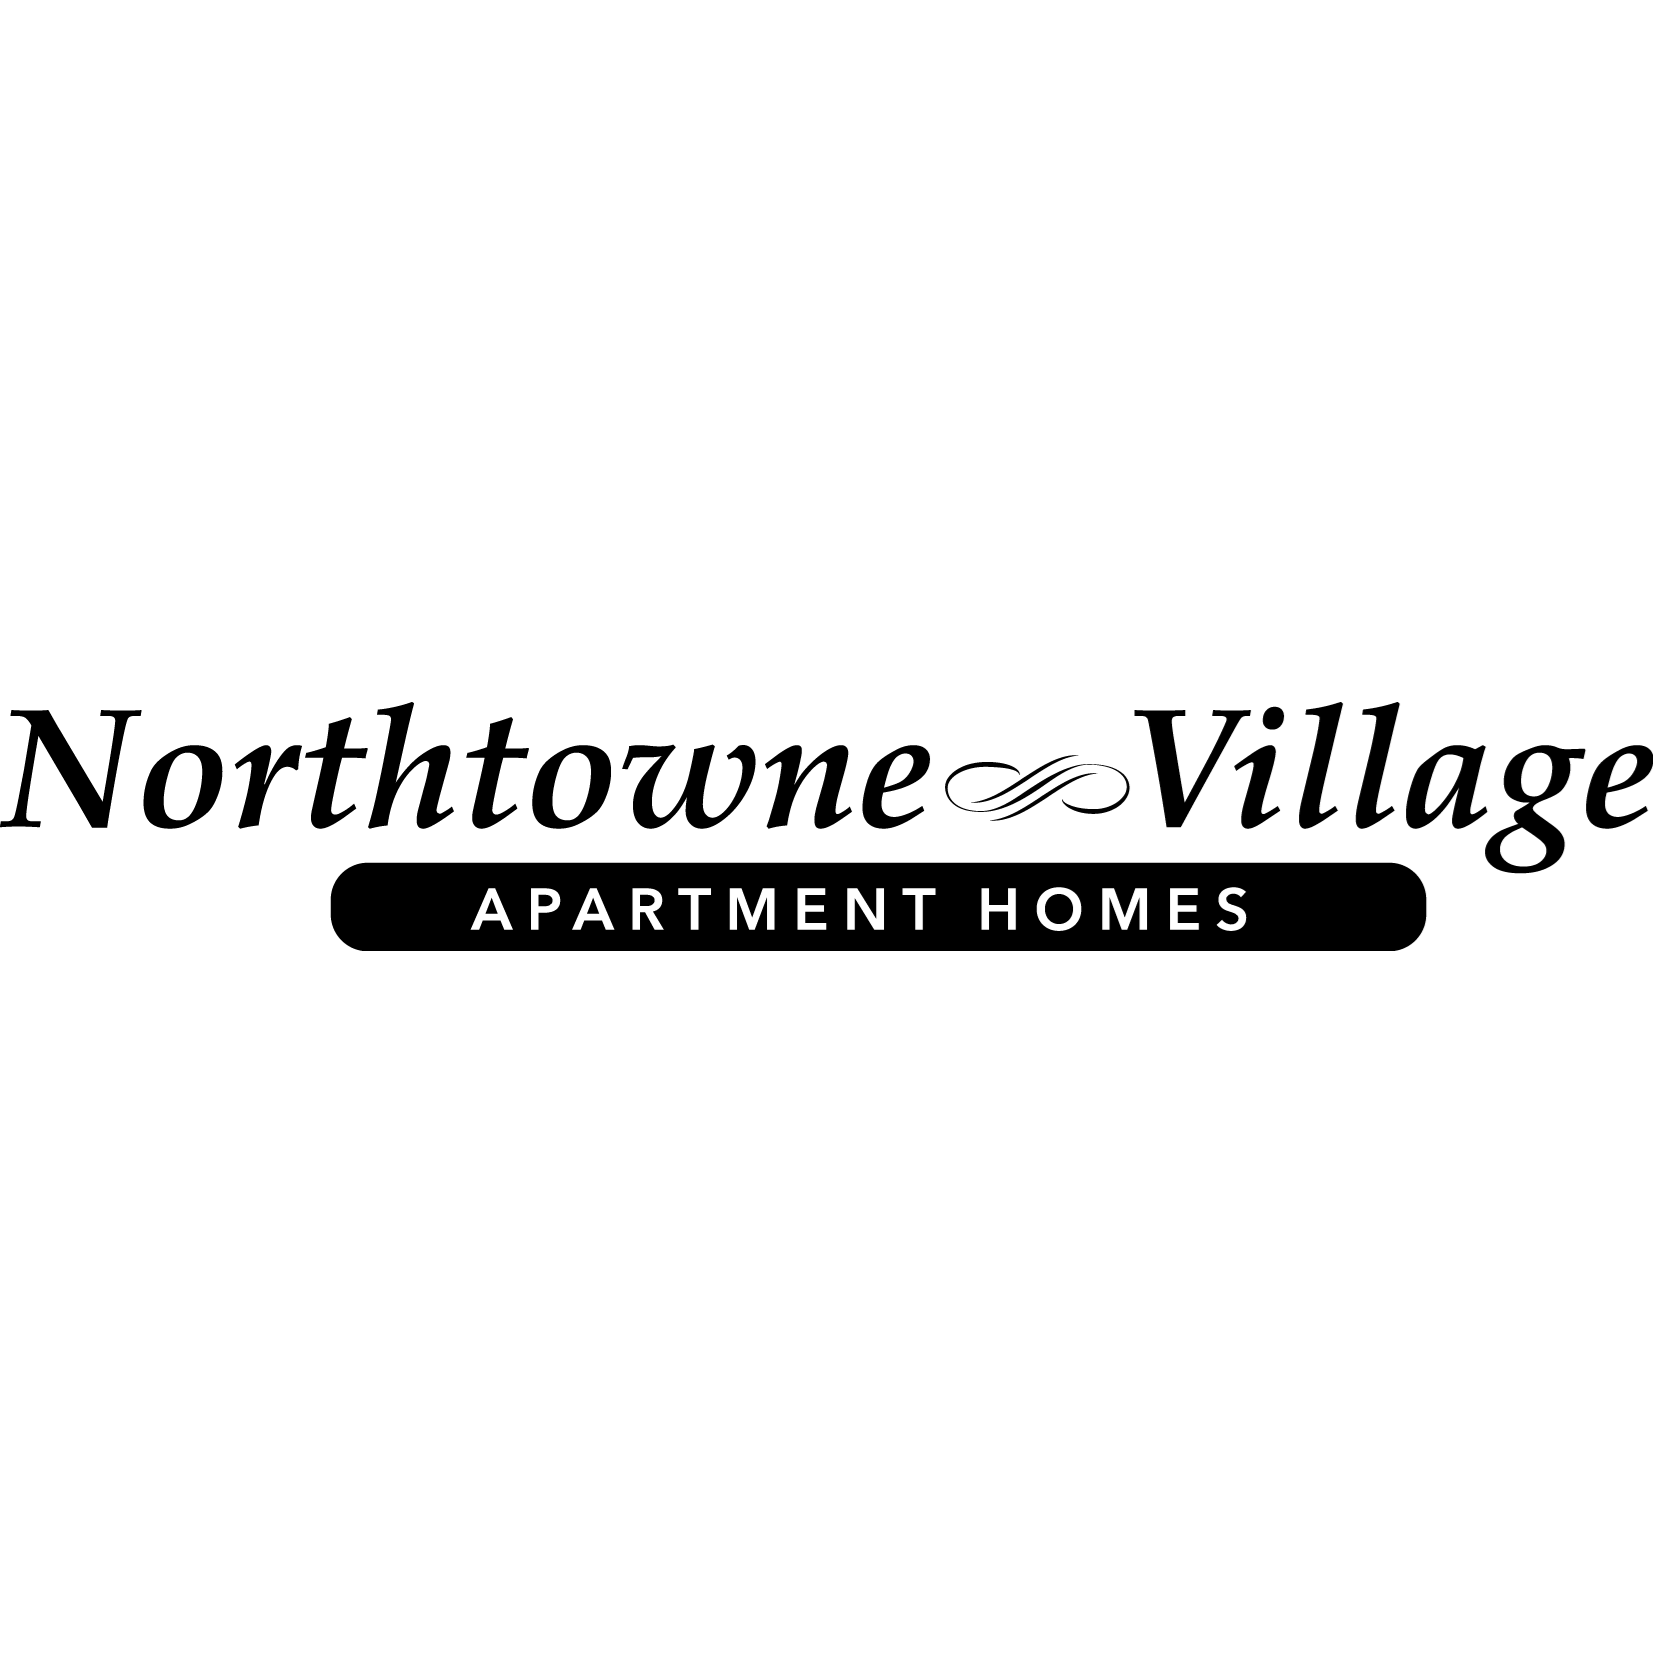 Northtowne Village Apartments image 17